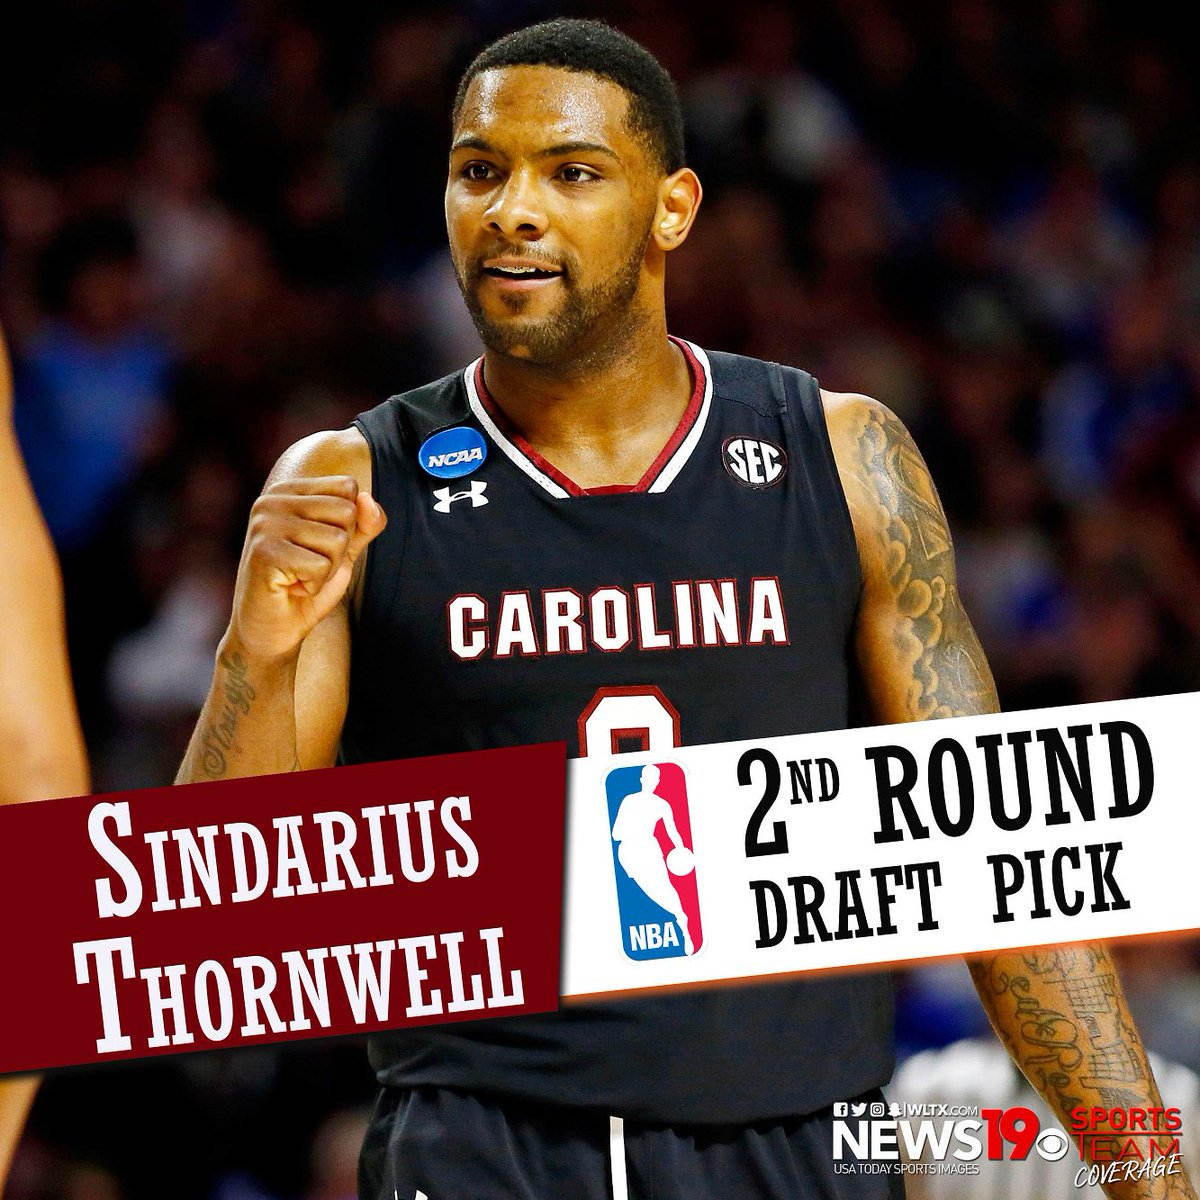 #BREAKING: USC's Sindarius Thornwell drafted by the Milwaukee Bucks wi...